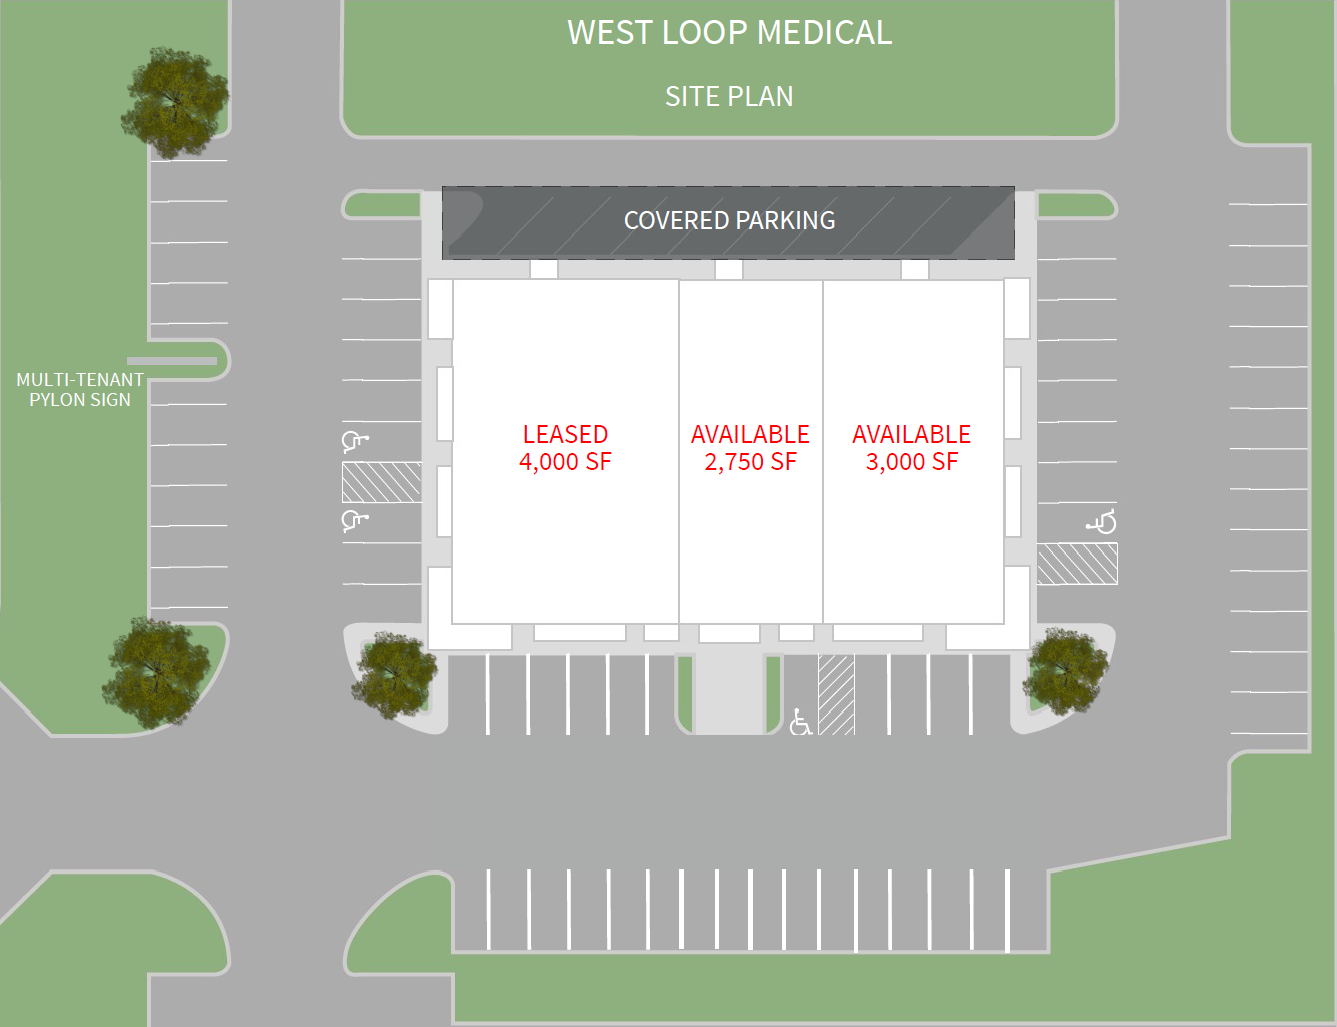 West Loop Medical Site Plan